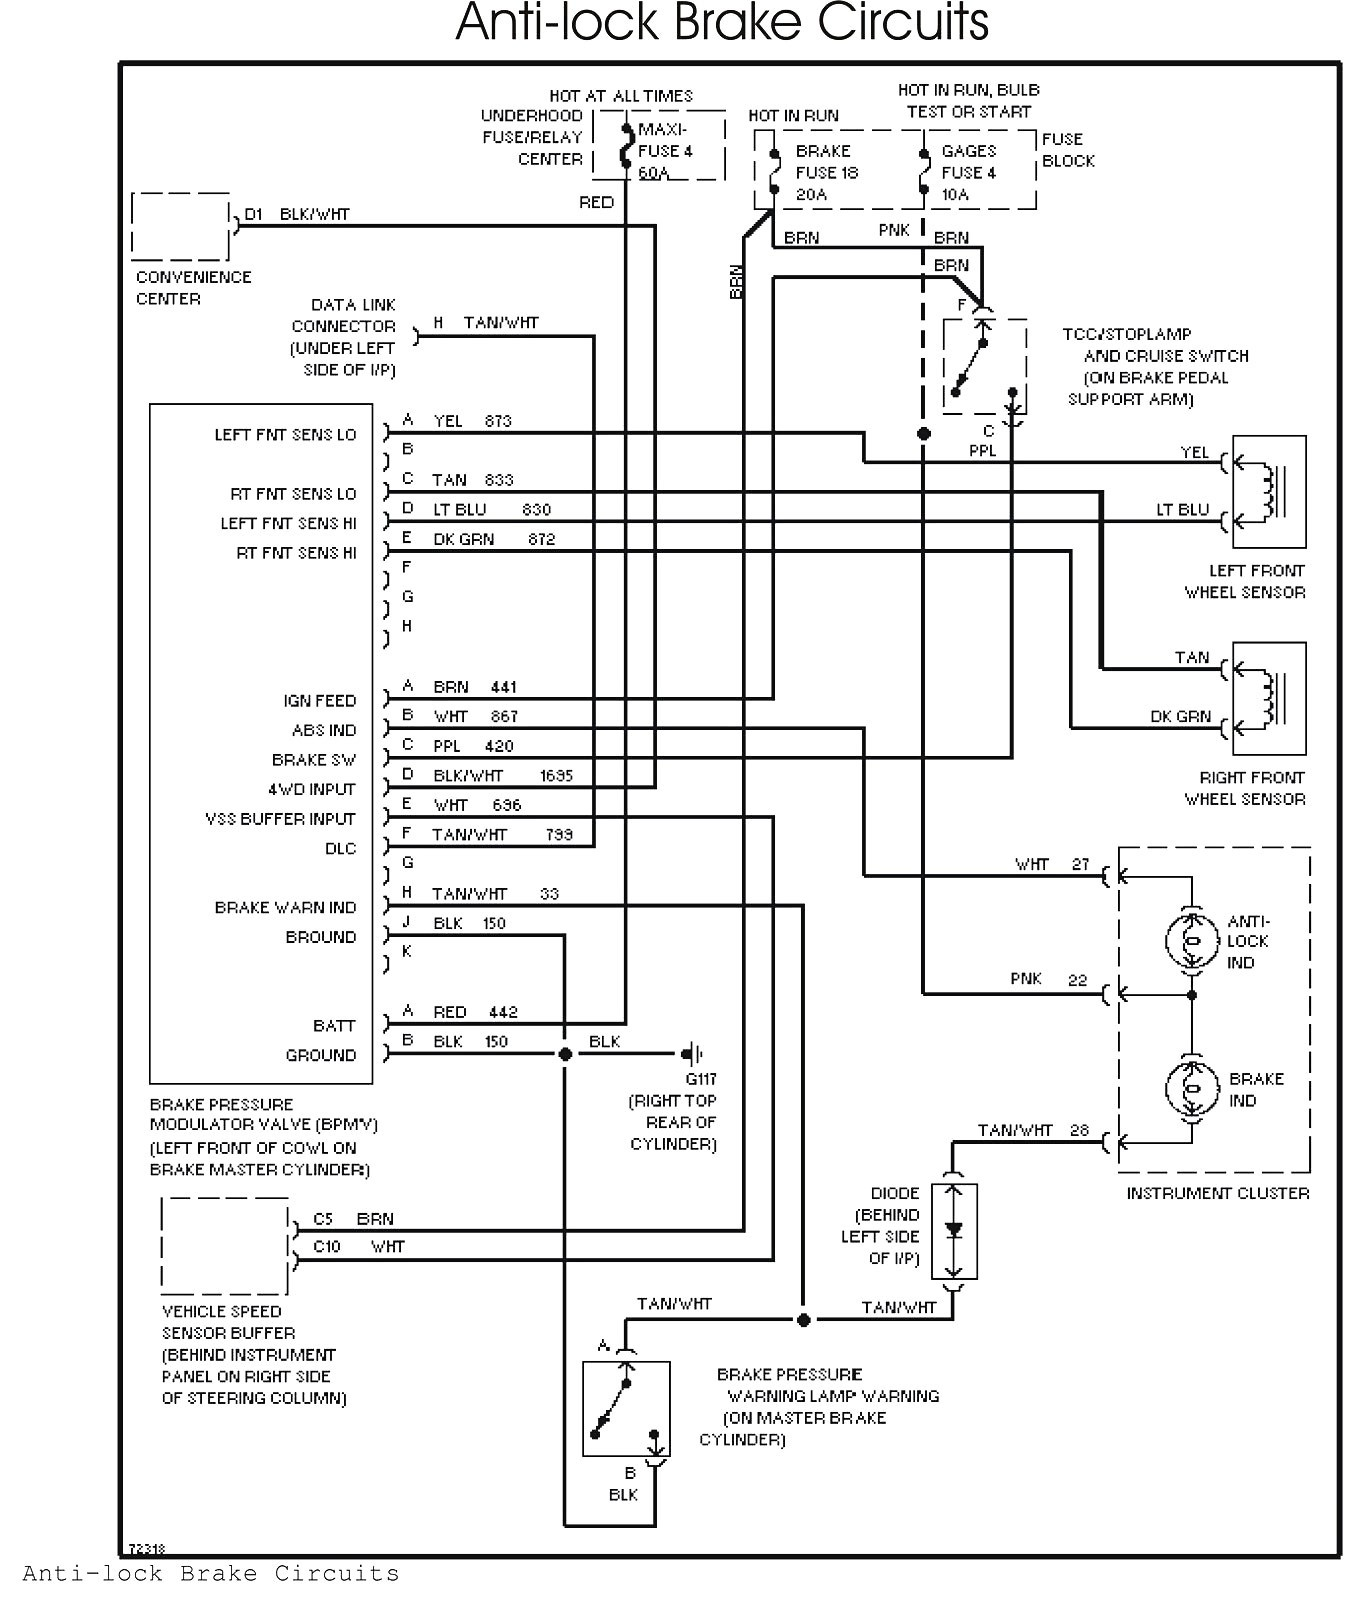 pierce fire truck wiring diagram